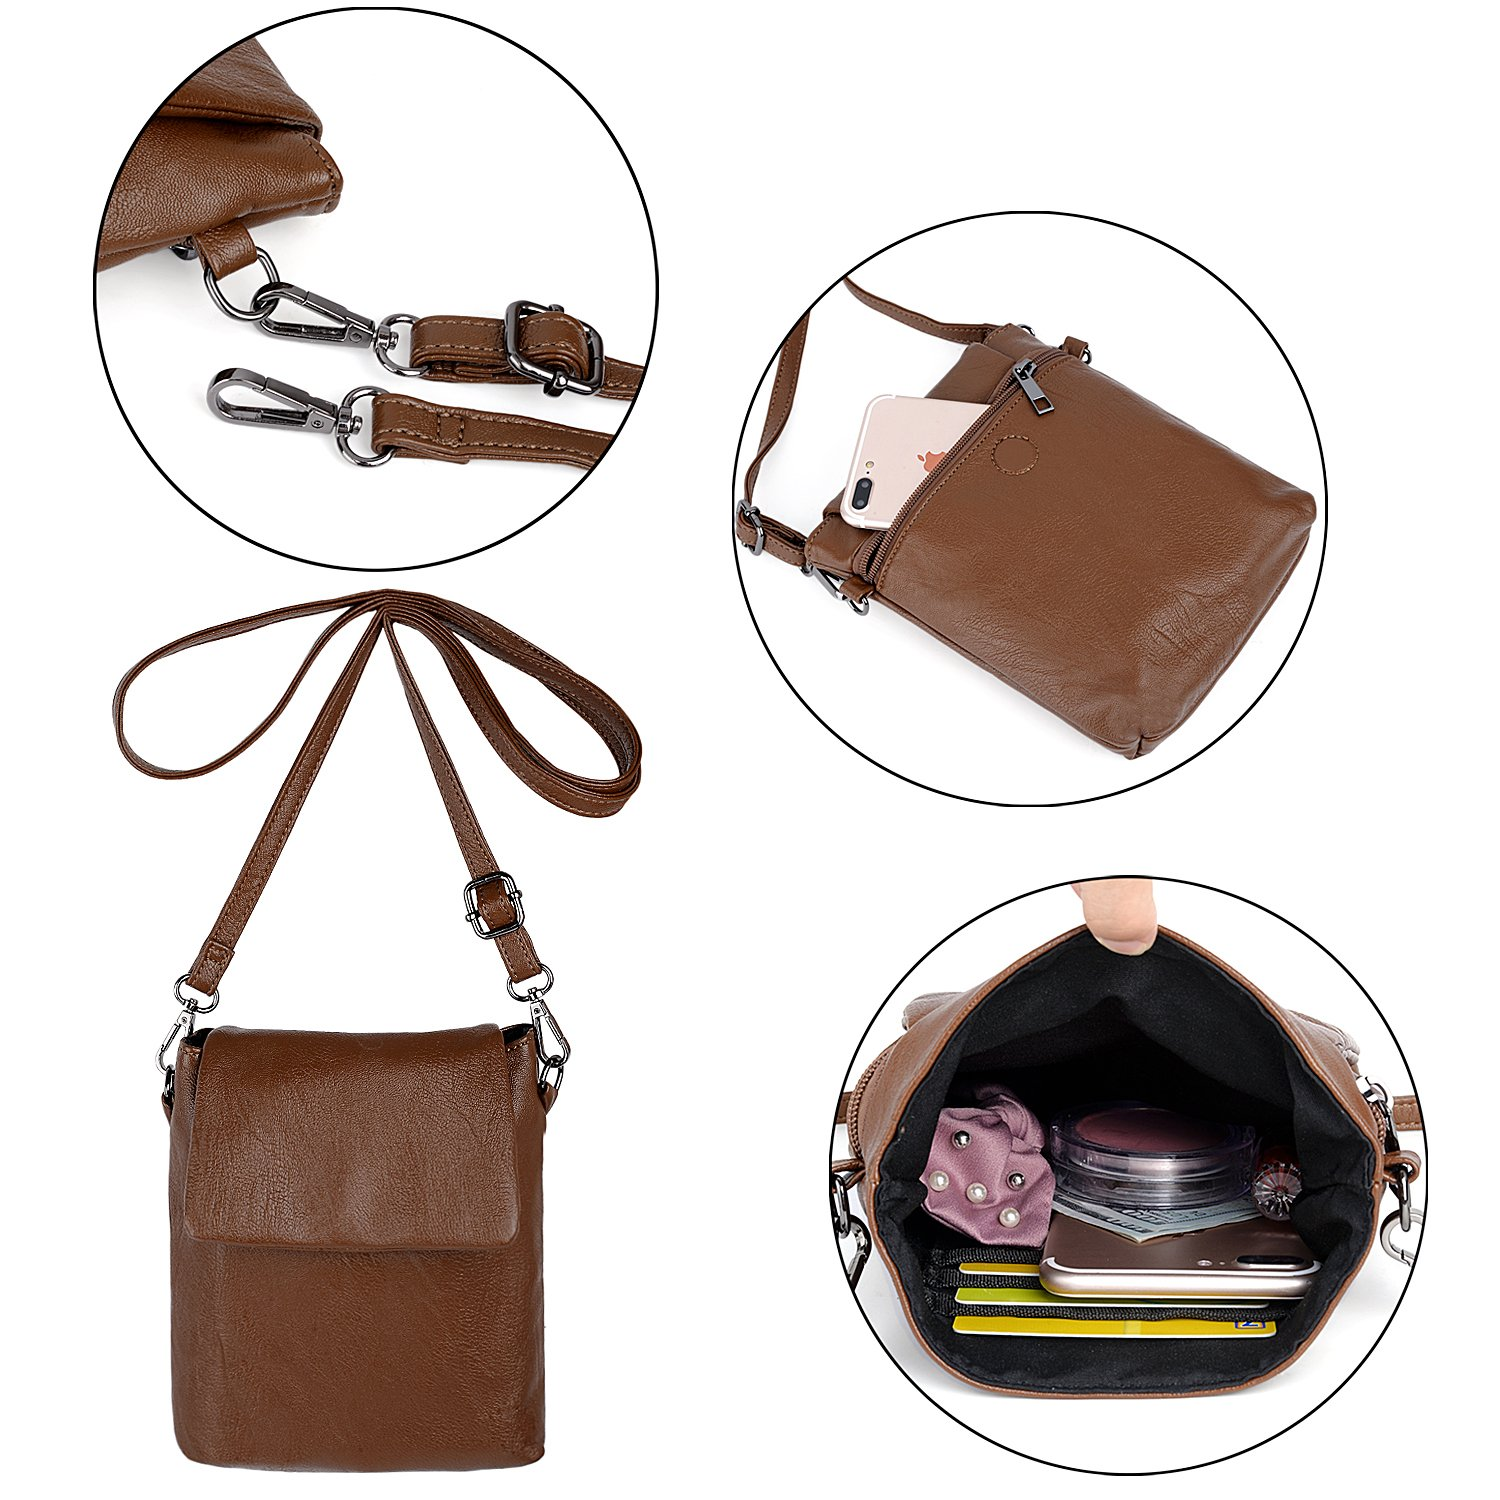 UTO Women Backpack Purse PU Washed Leather Ladies Rucksack Detachable Crossbody Shoulder Bag B Brown by UTO (Image #5)